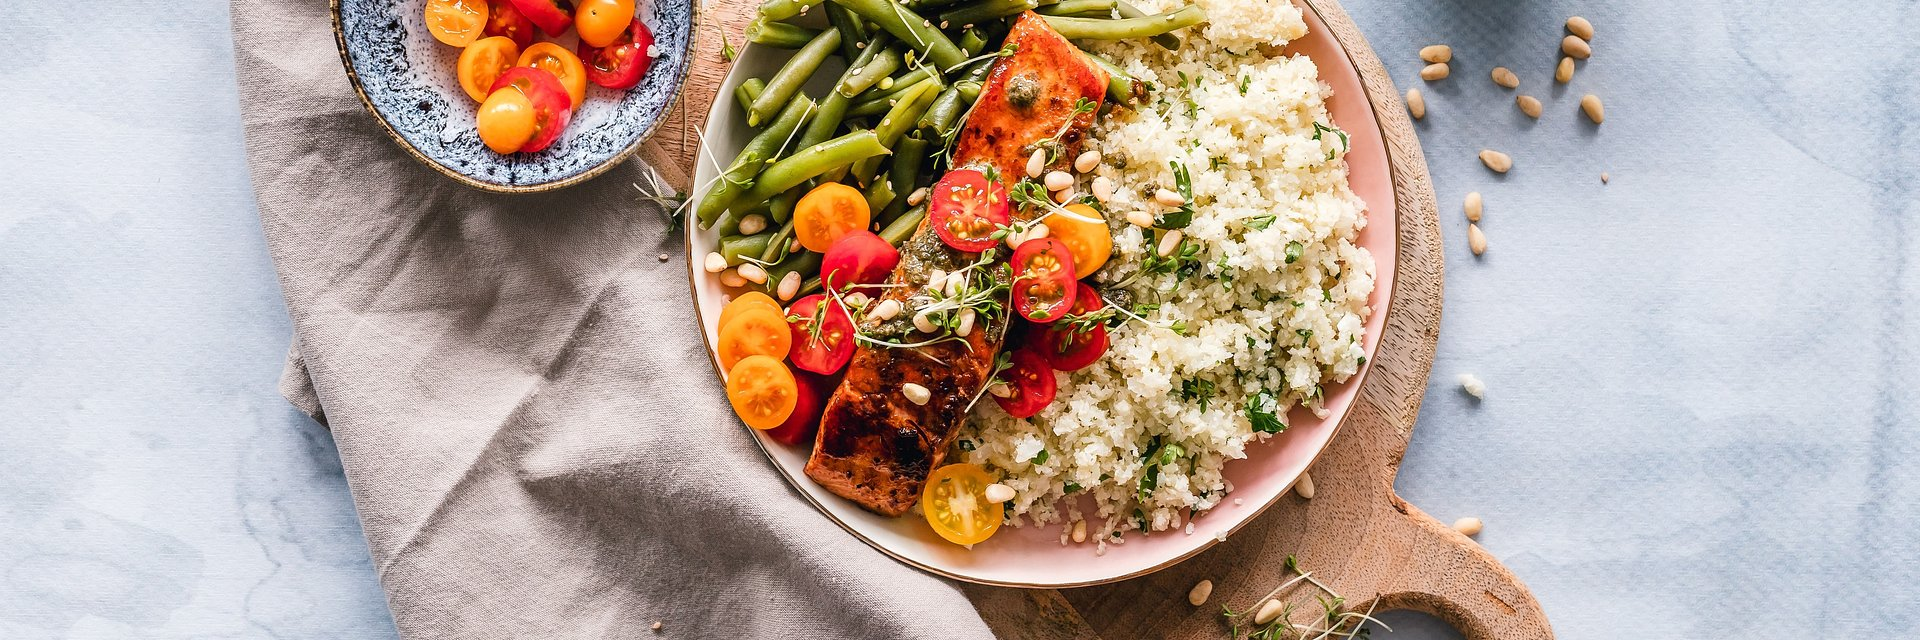 Healthy Lunch Ideas & Options